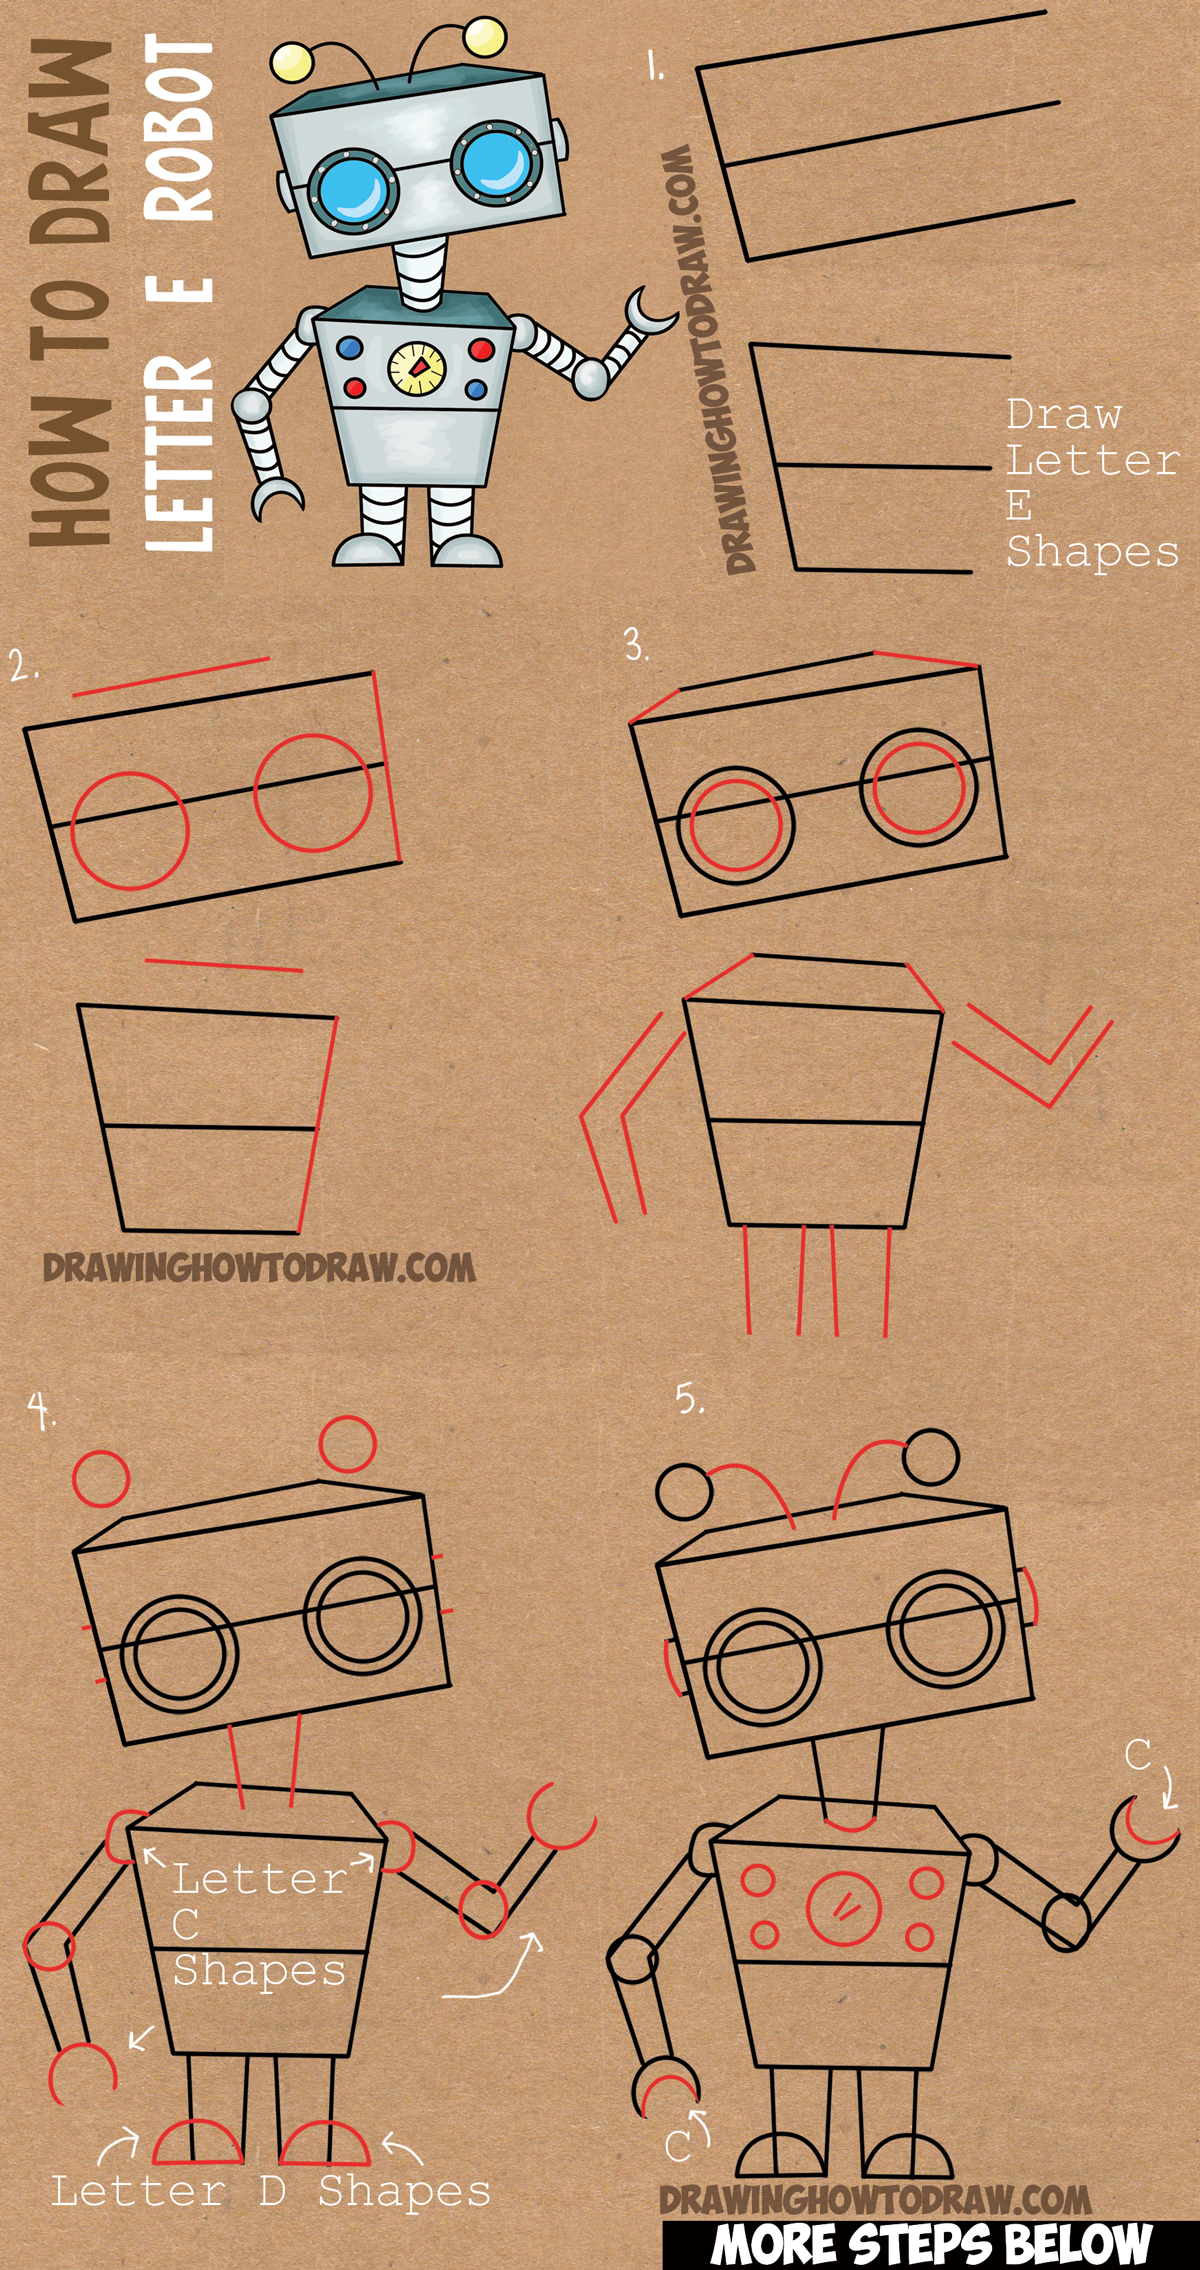 Drawing robots archives how to draw step by step drawing for Learn drawing online step by step